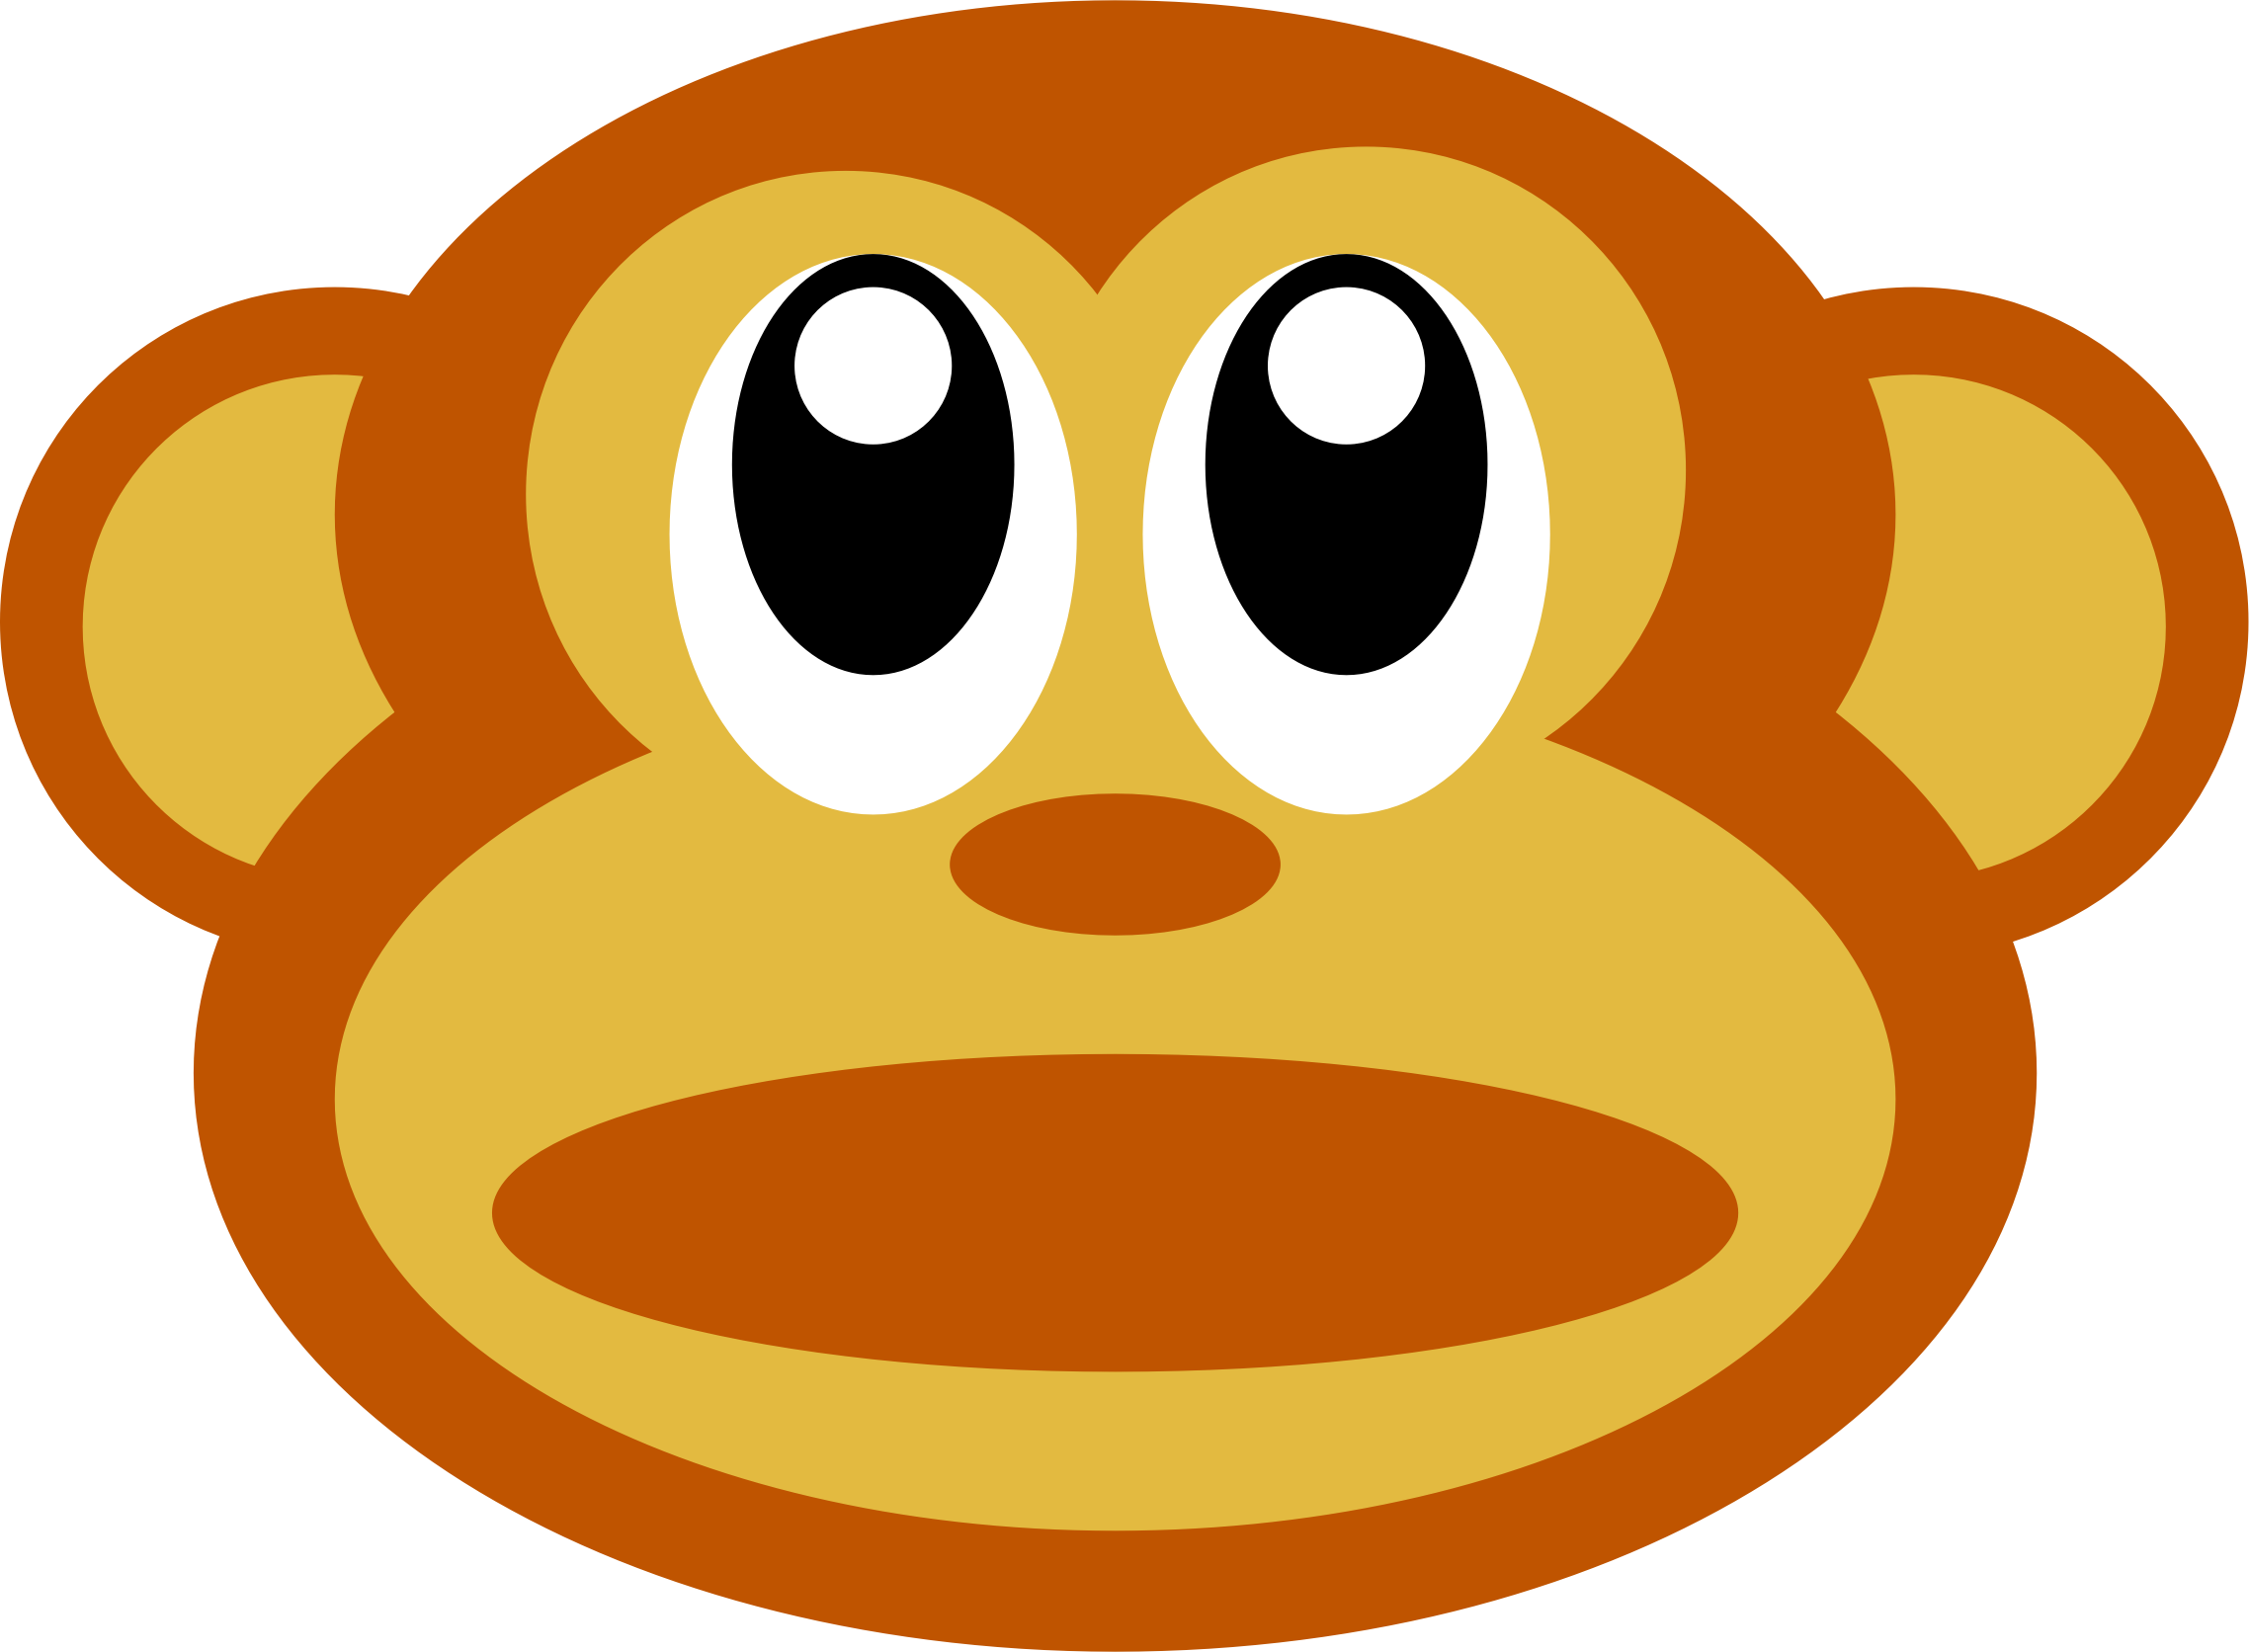 Monkey Face Clipart #1. BIG IMAGE (PNG)-Monkey Face Clipart #1. BIG IMAGE (PNG)-12